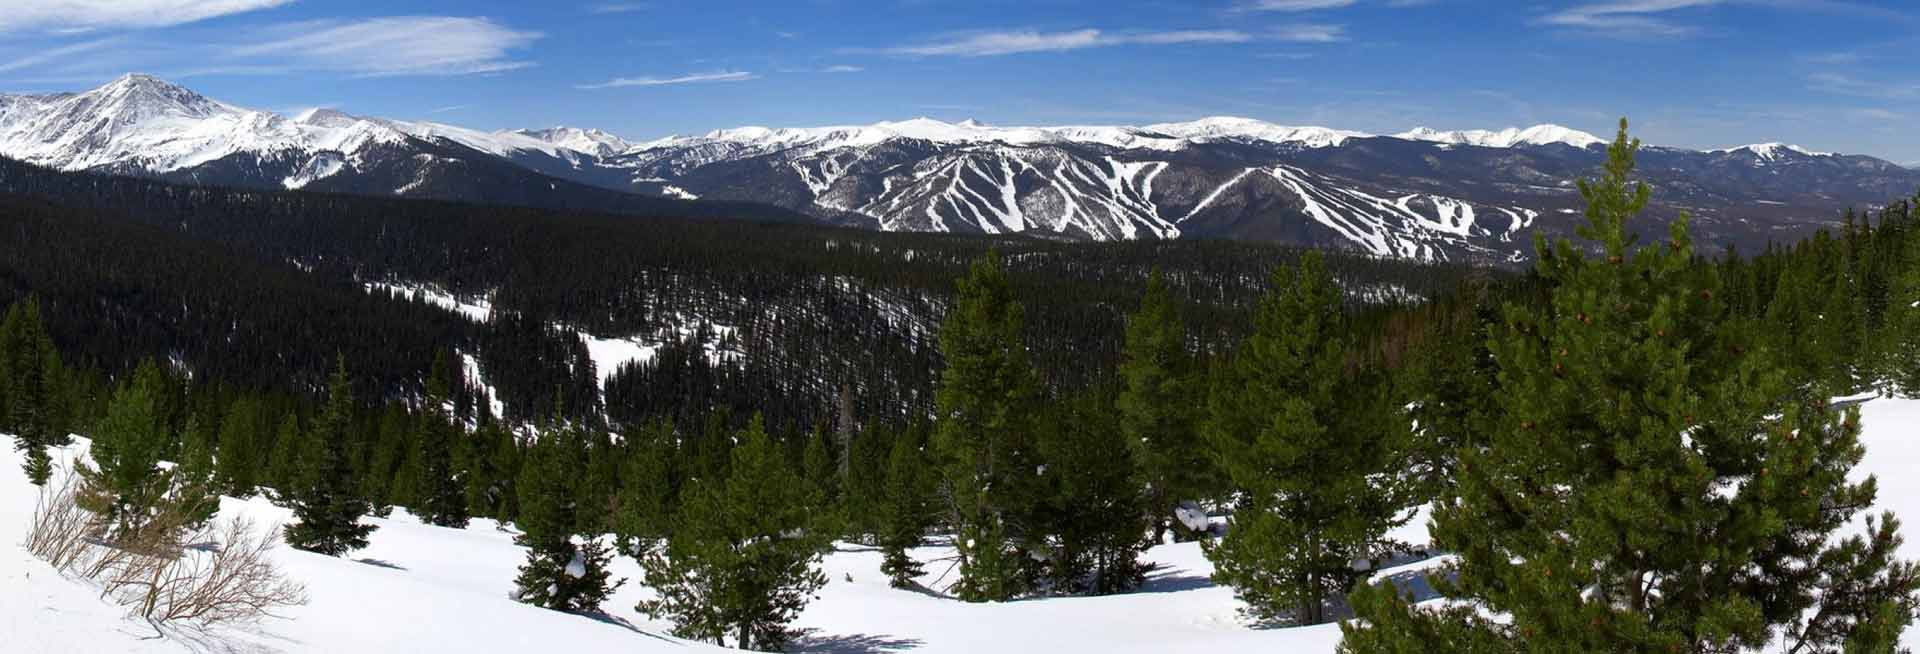 Winter Park forest and mountains in winter.